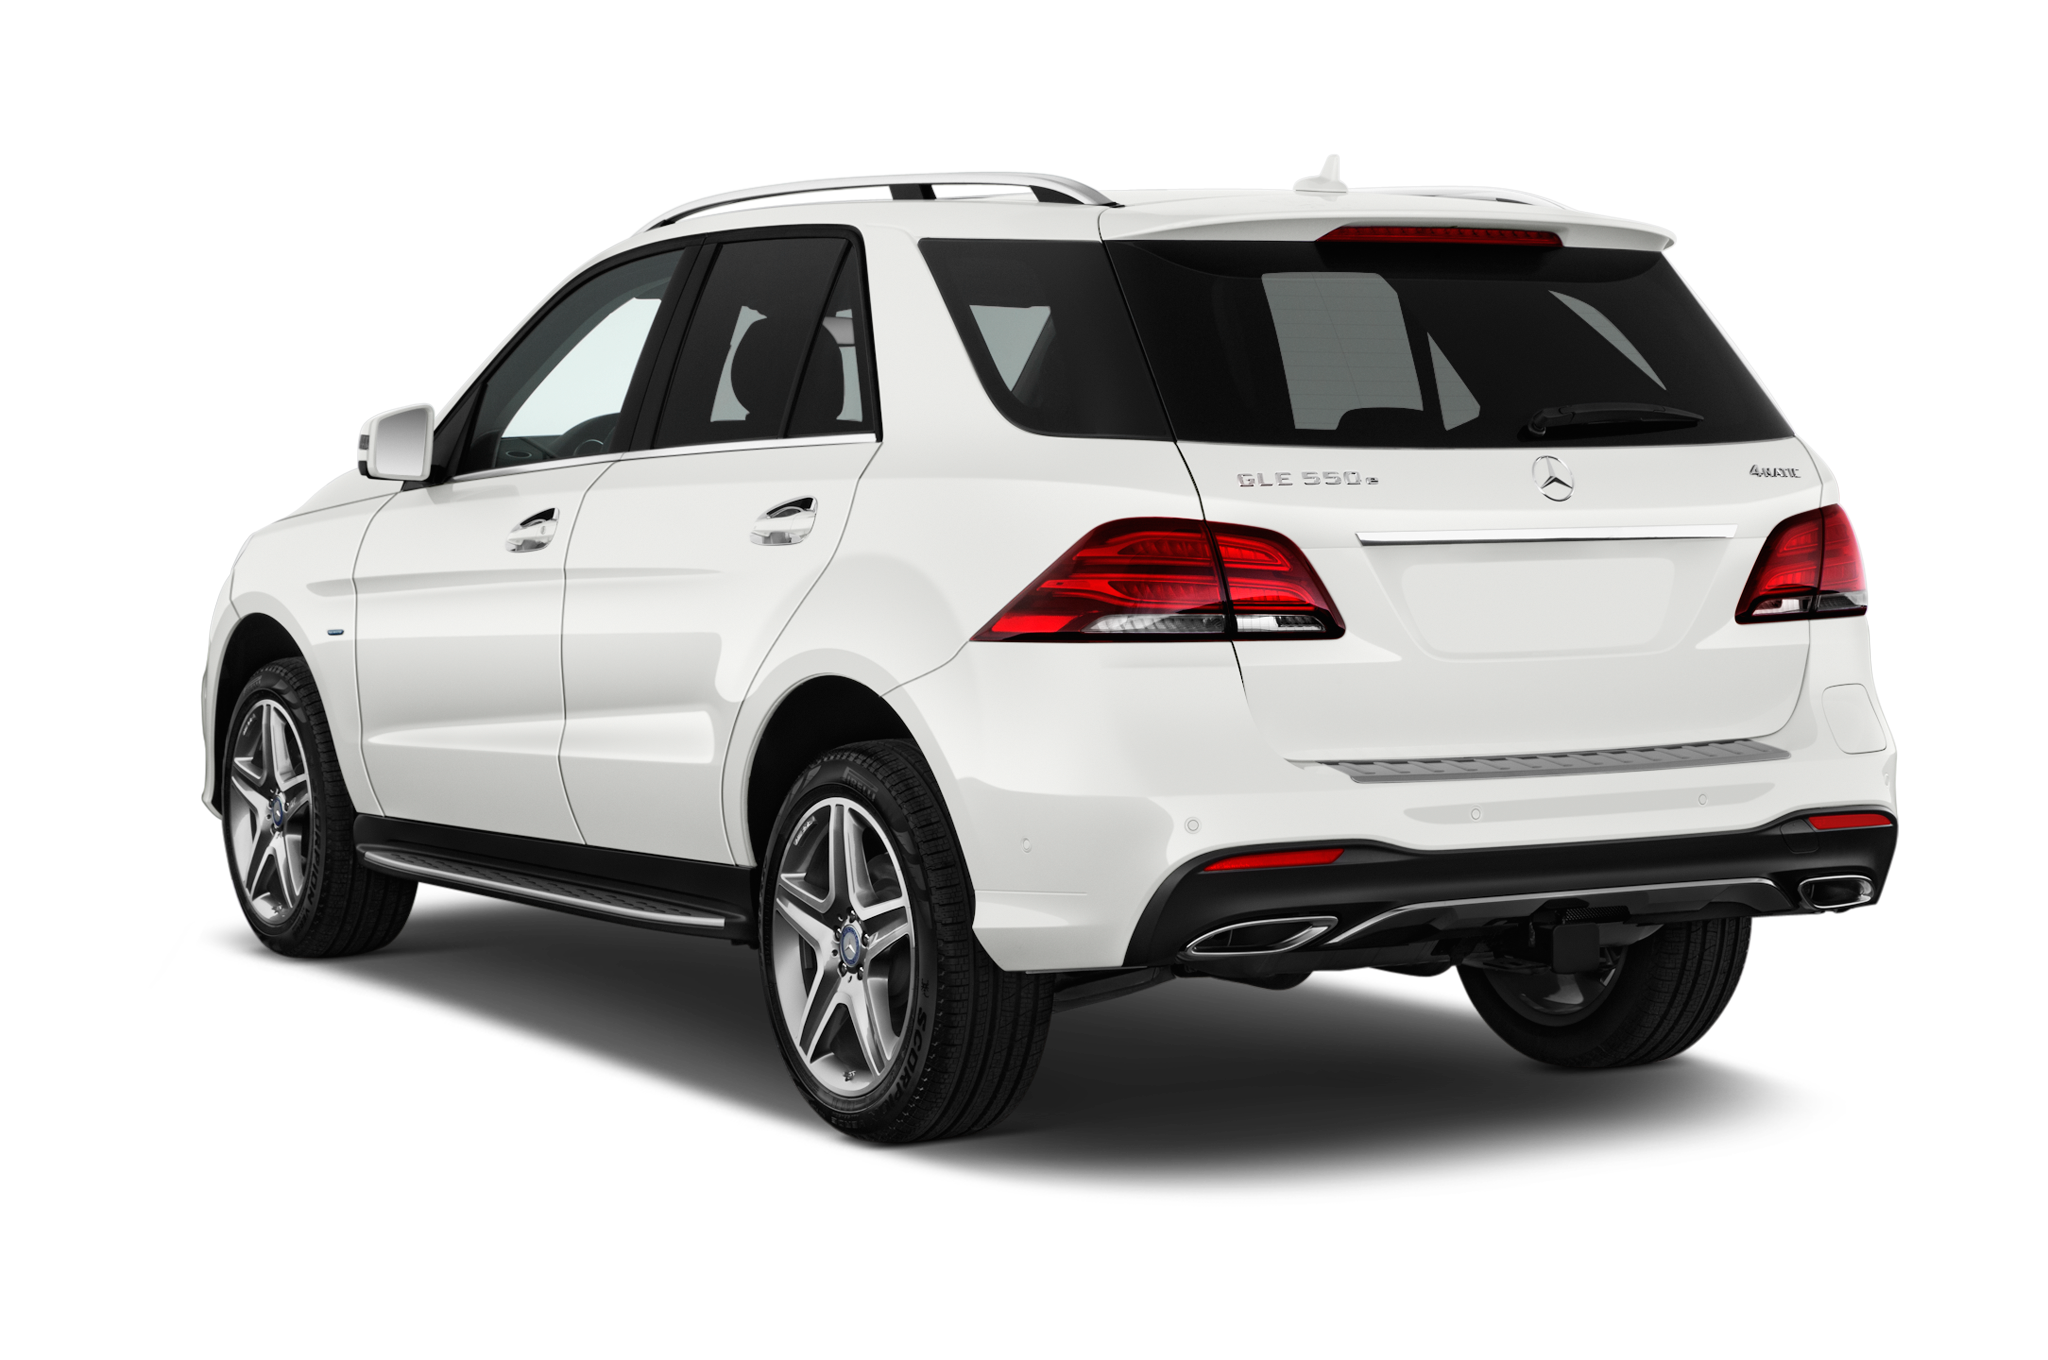 2018 mercedes benz gle350 emporium auto lease for Mercedes benz gle 350 lease